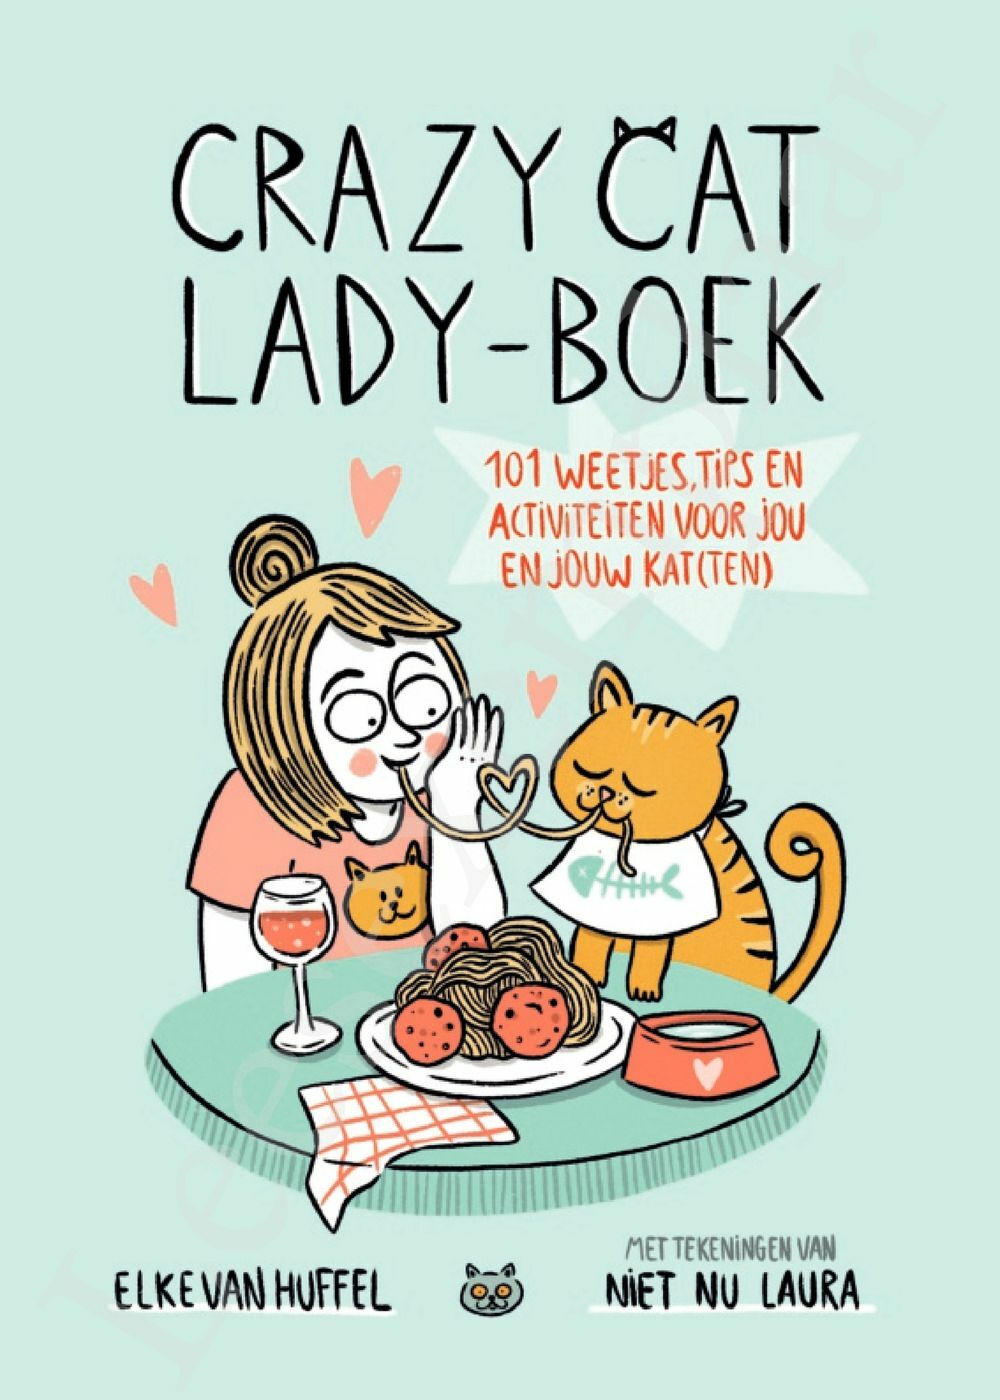 Preview: Crazy Cat Lady-boek